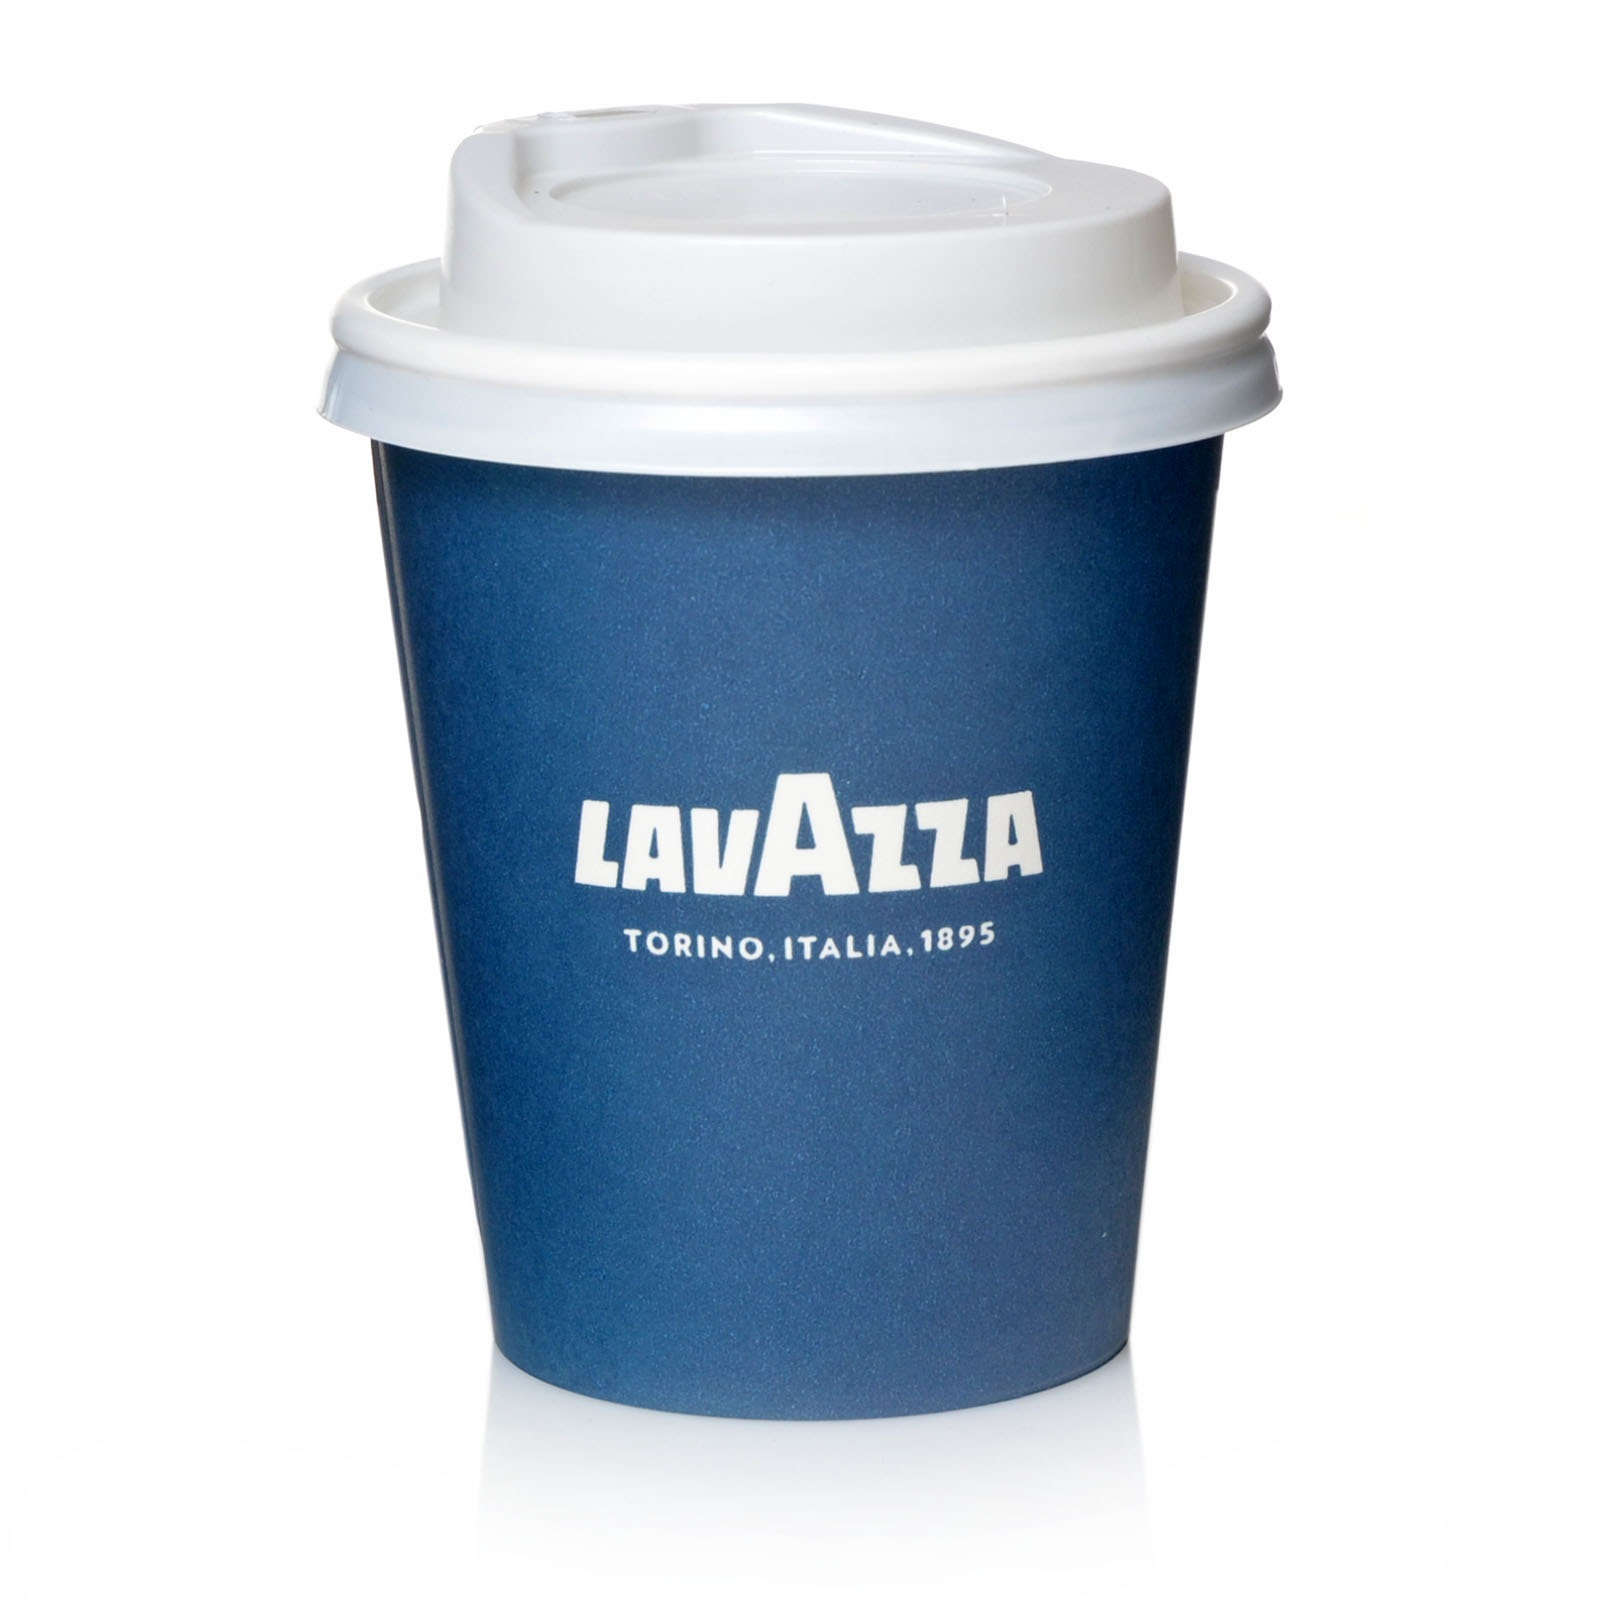 lavazza to go kaffeebecher 270cc pappbecher 50 becher mit deckel. Black Bedroom Furniture Sets. Home Design Ideas